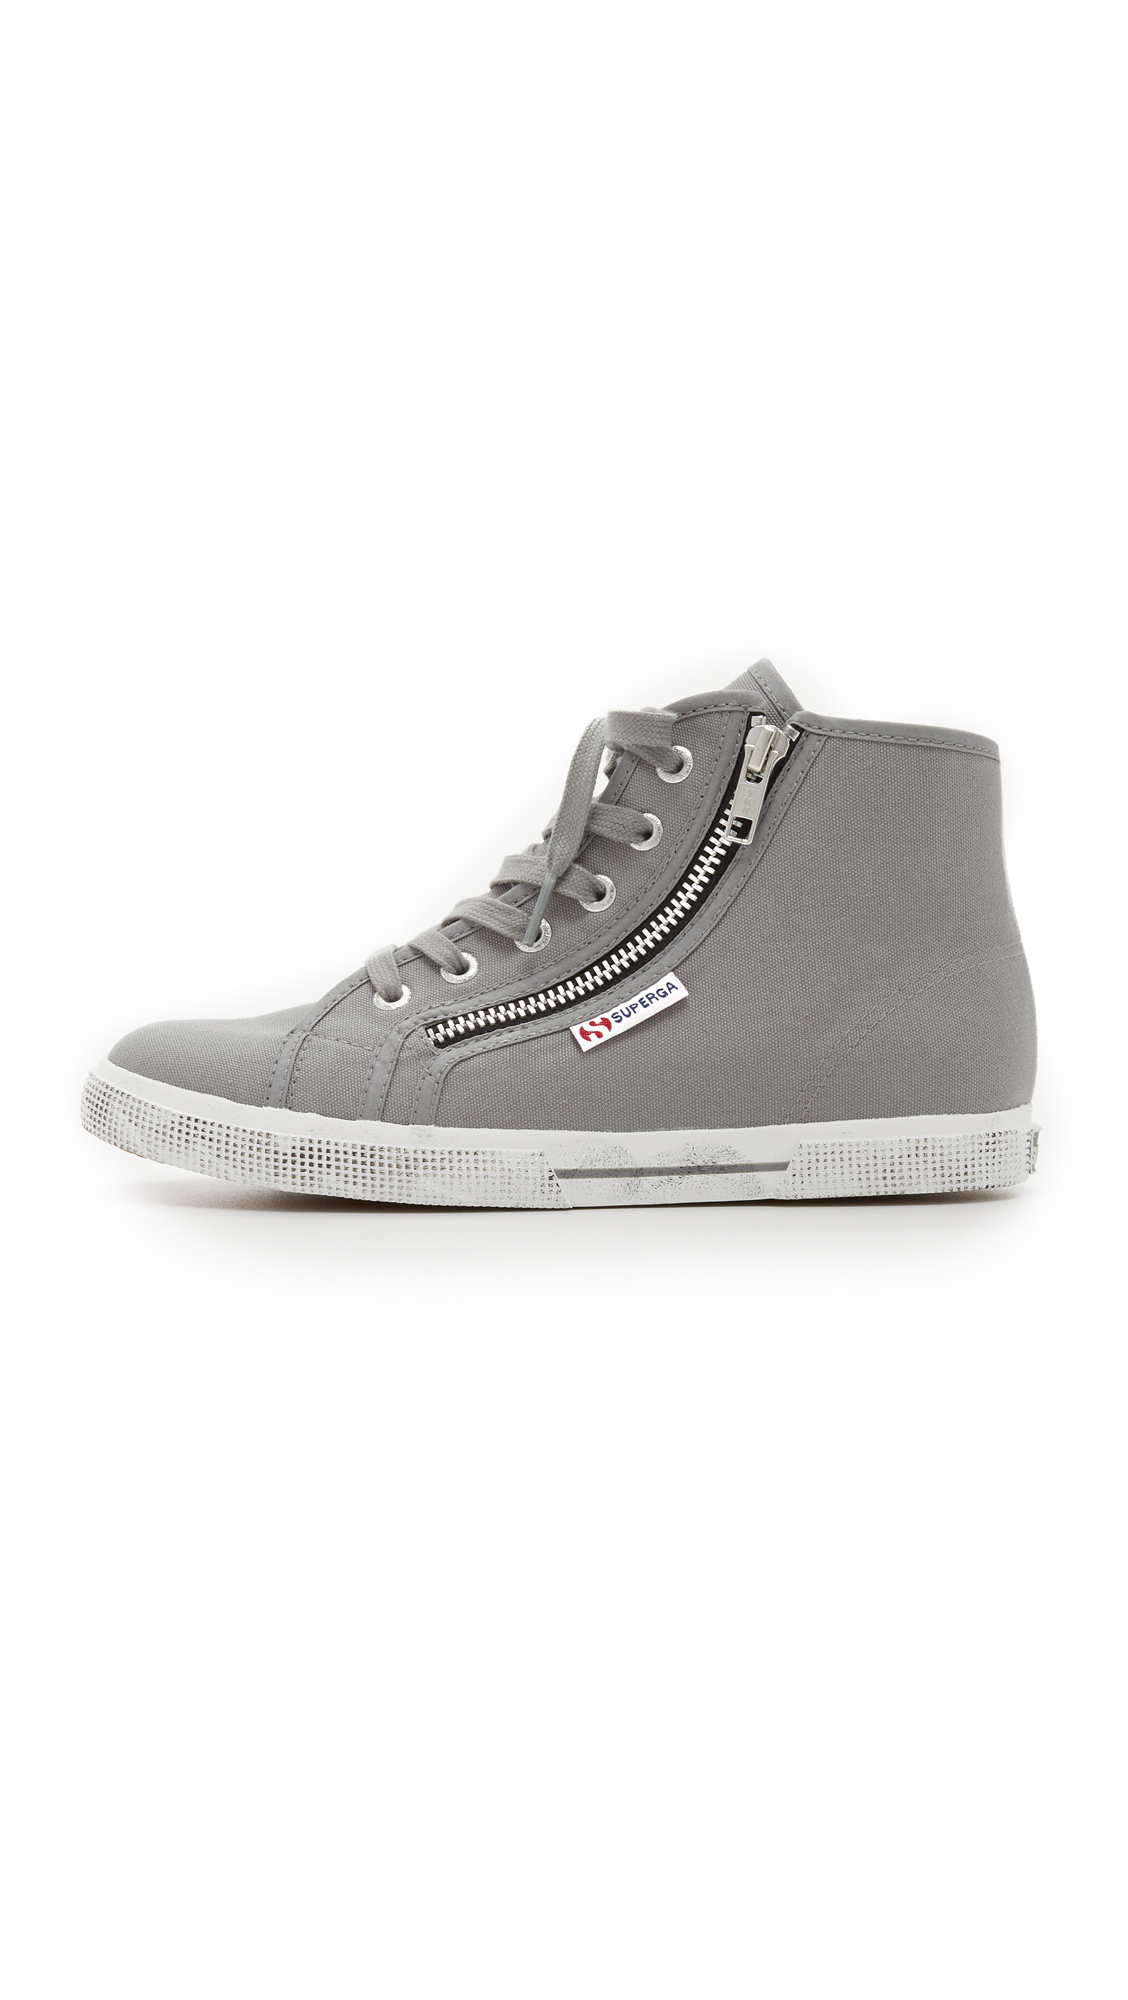 Superga 2224 COTDU High Top Sneakers  9ef6ac240